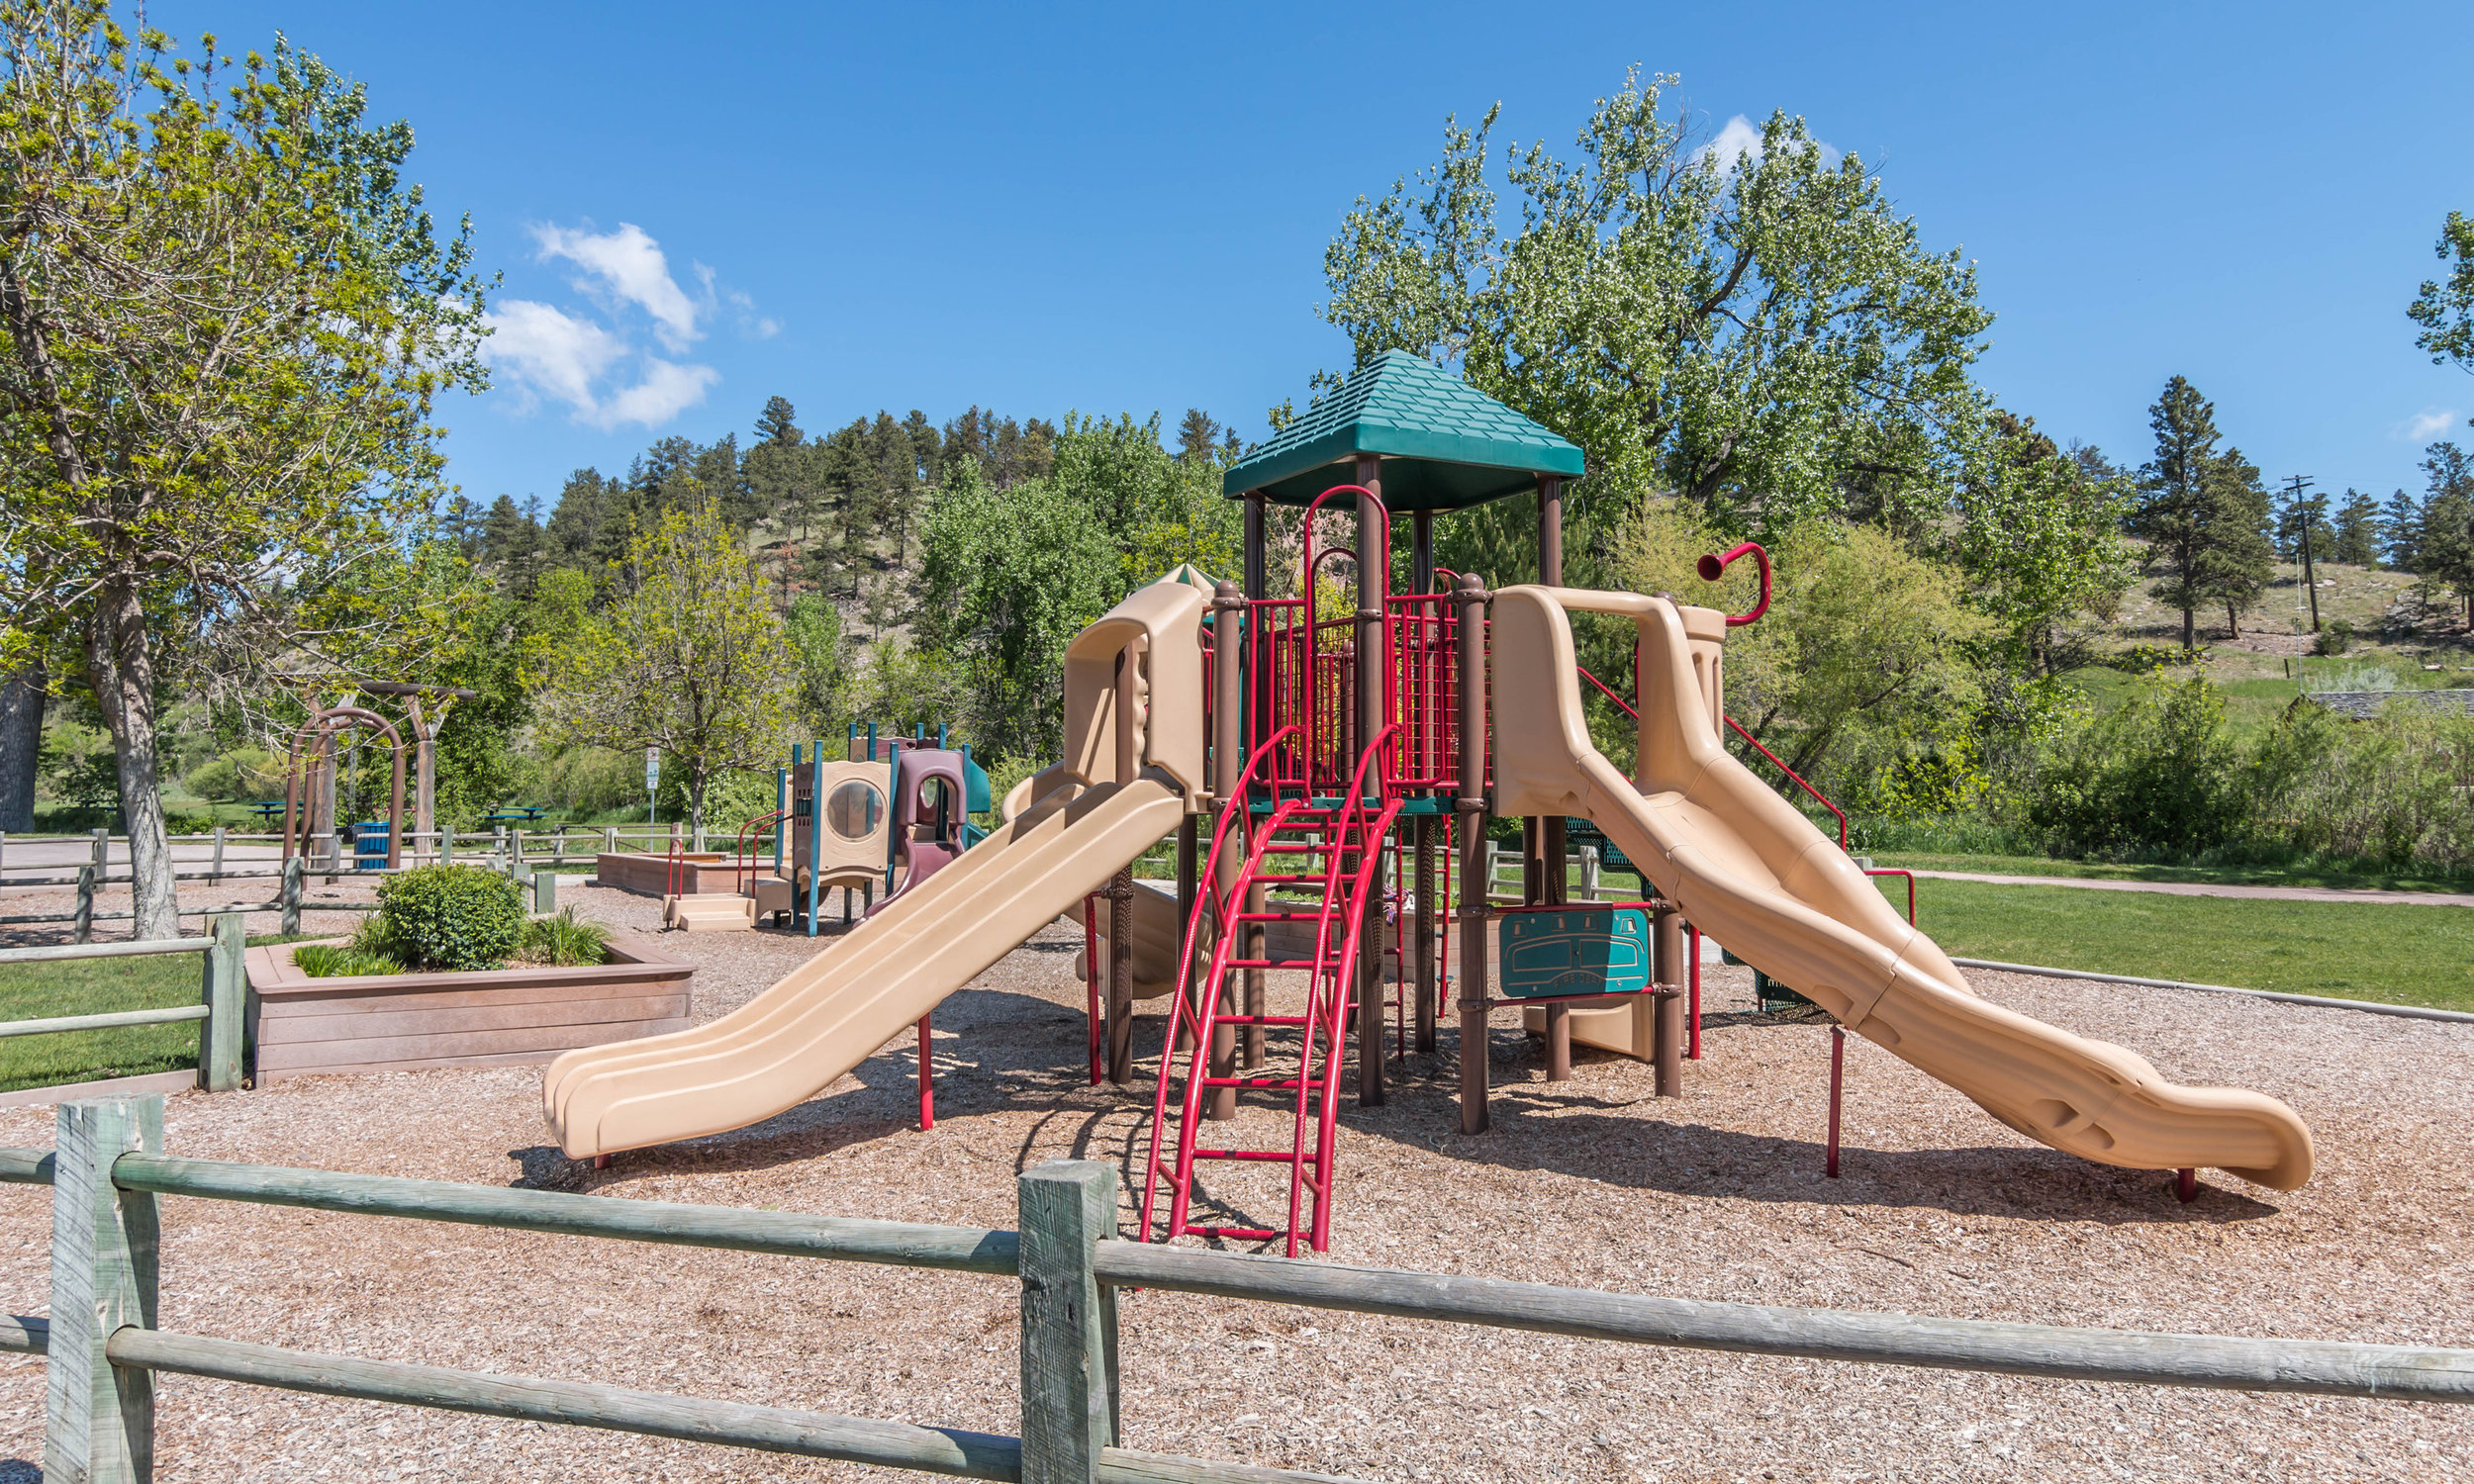 07-A Great Community Play Area.jpg